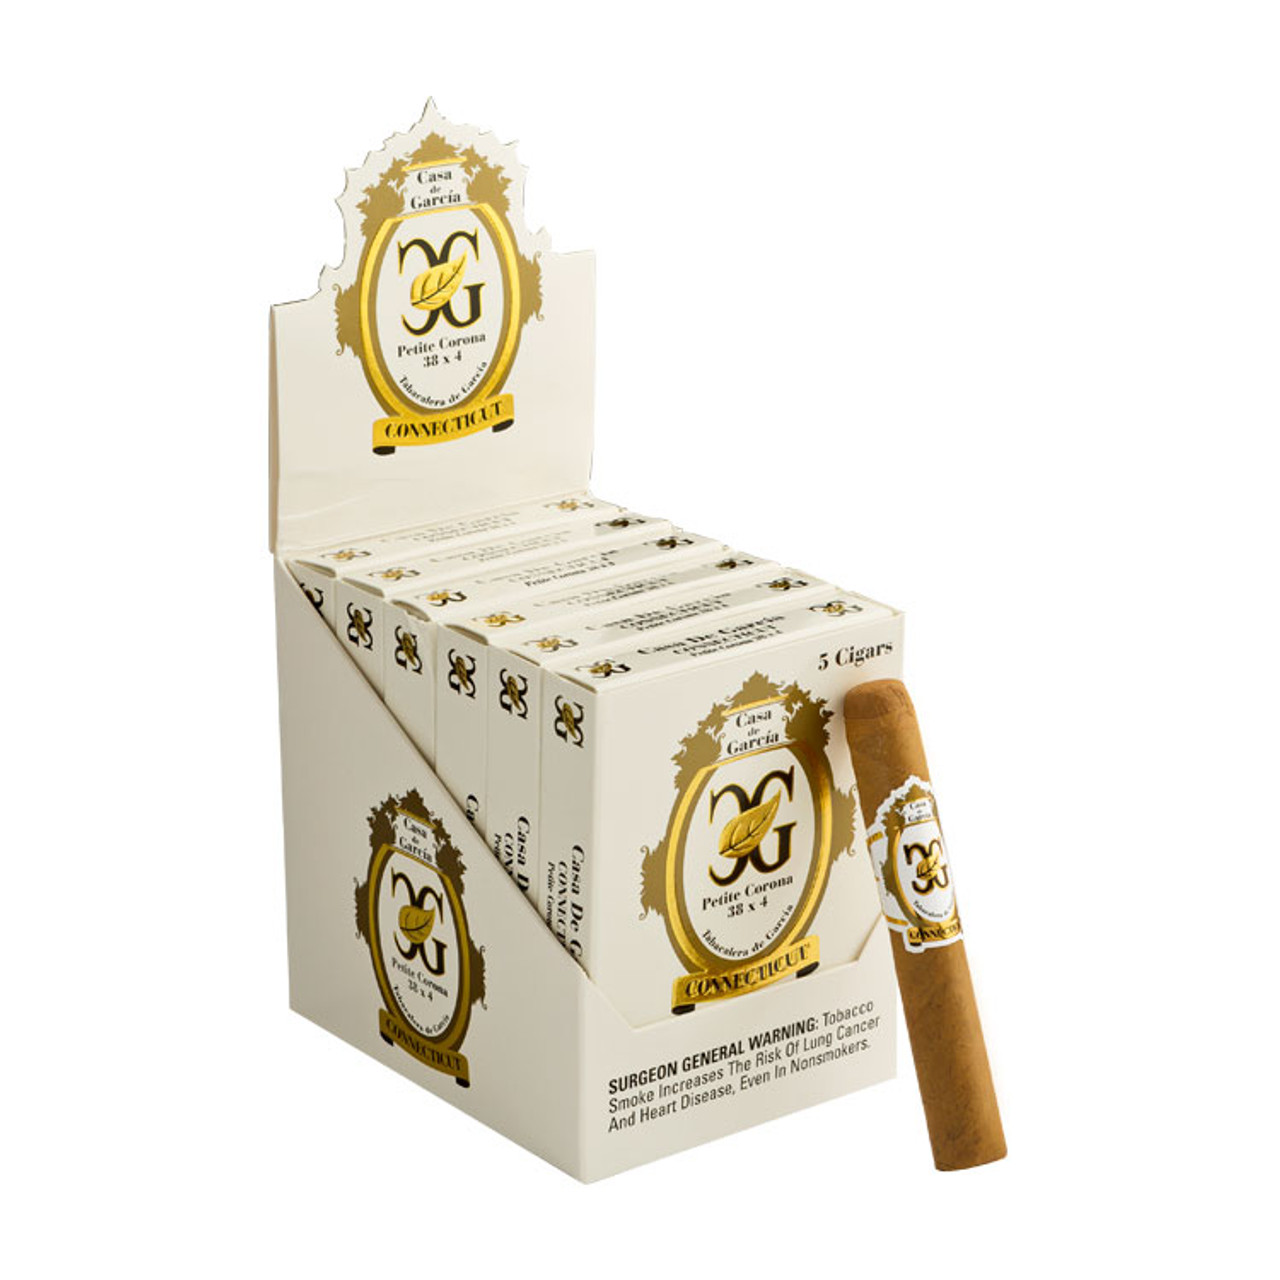 Casa de Garcia Connecticut Petite Corona Cigars - 4.5 x 38 (6 Packs of 5)